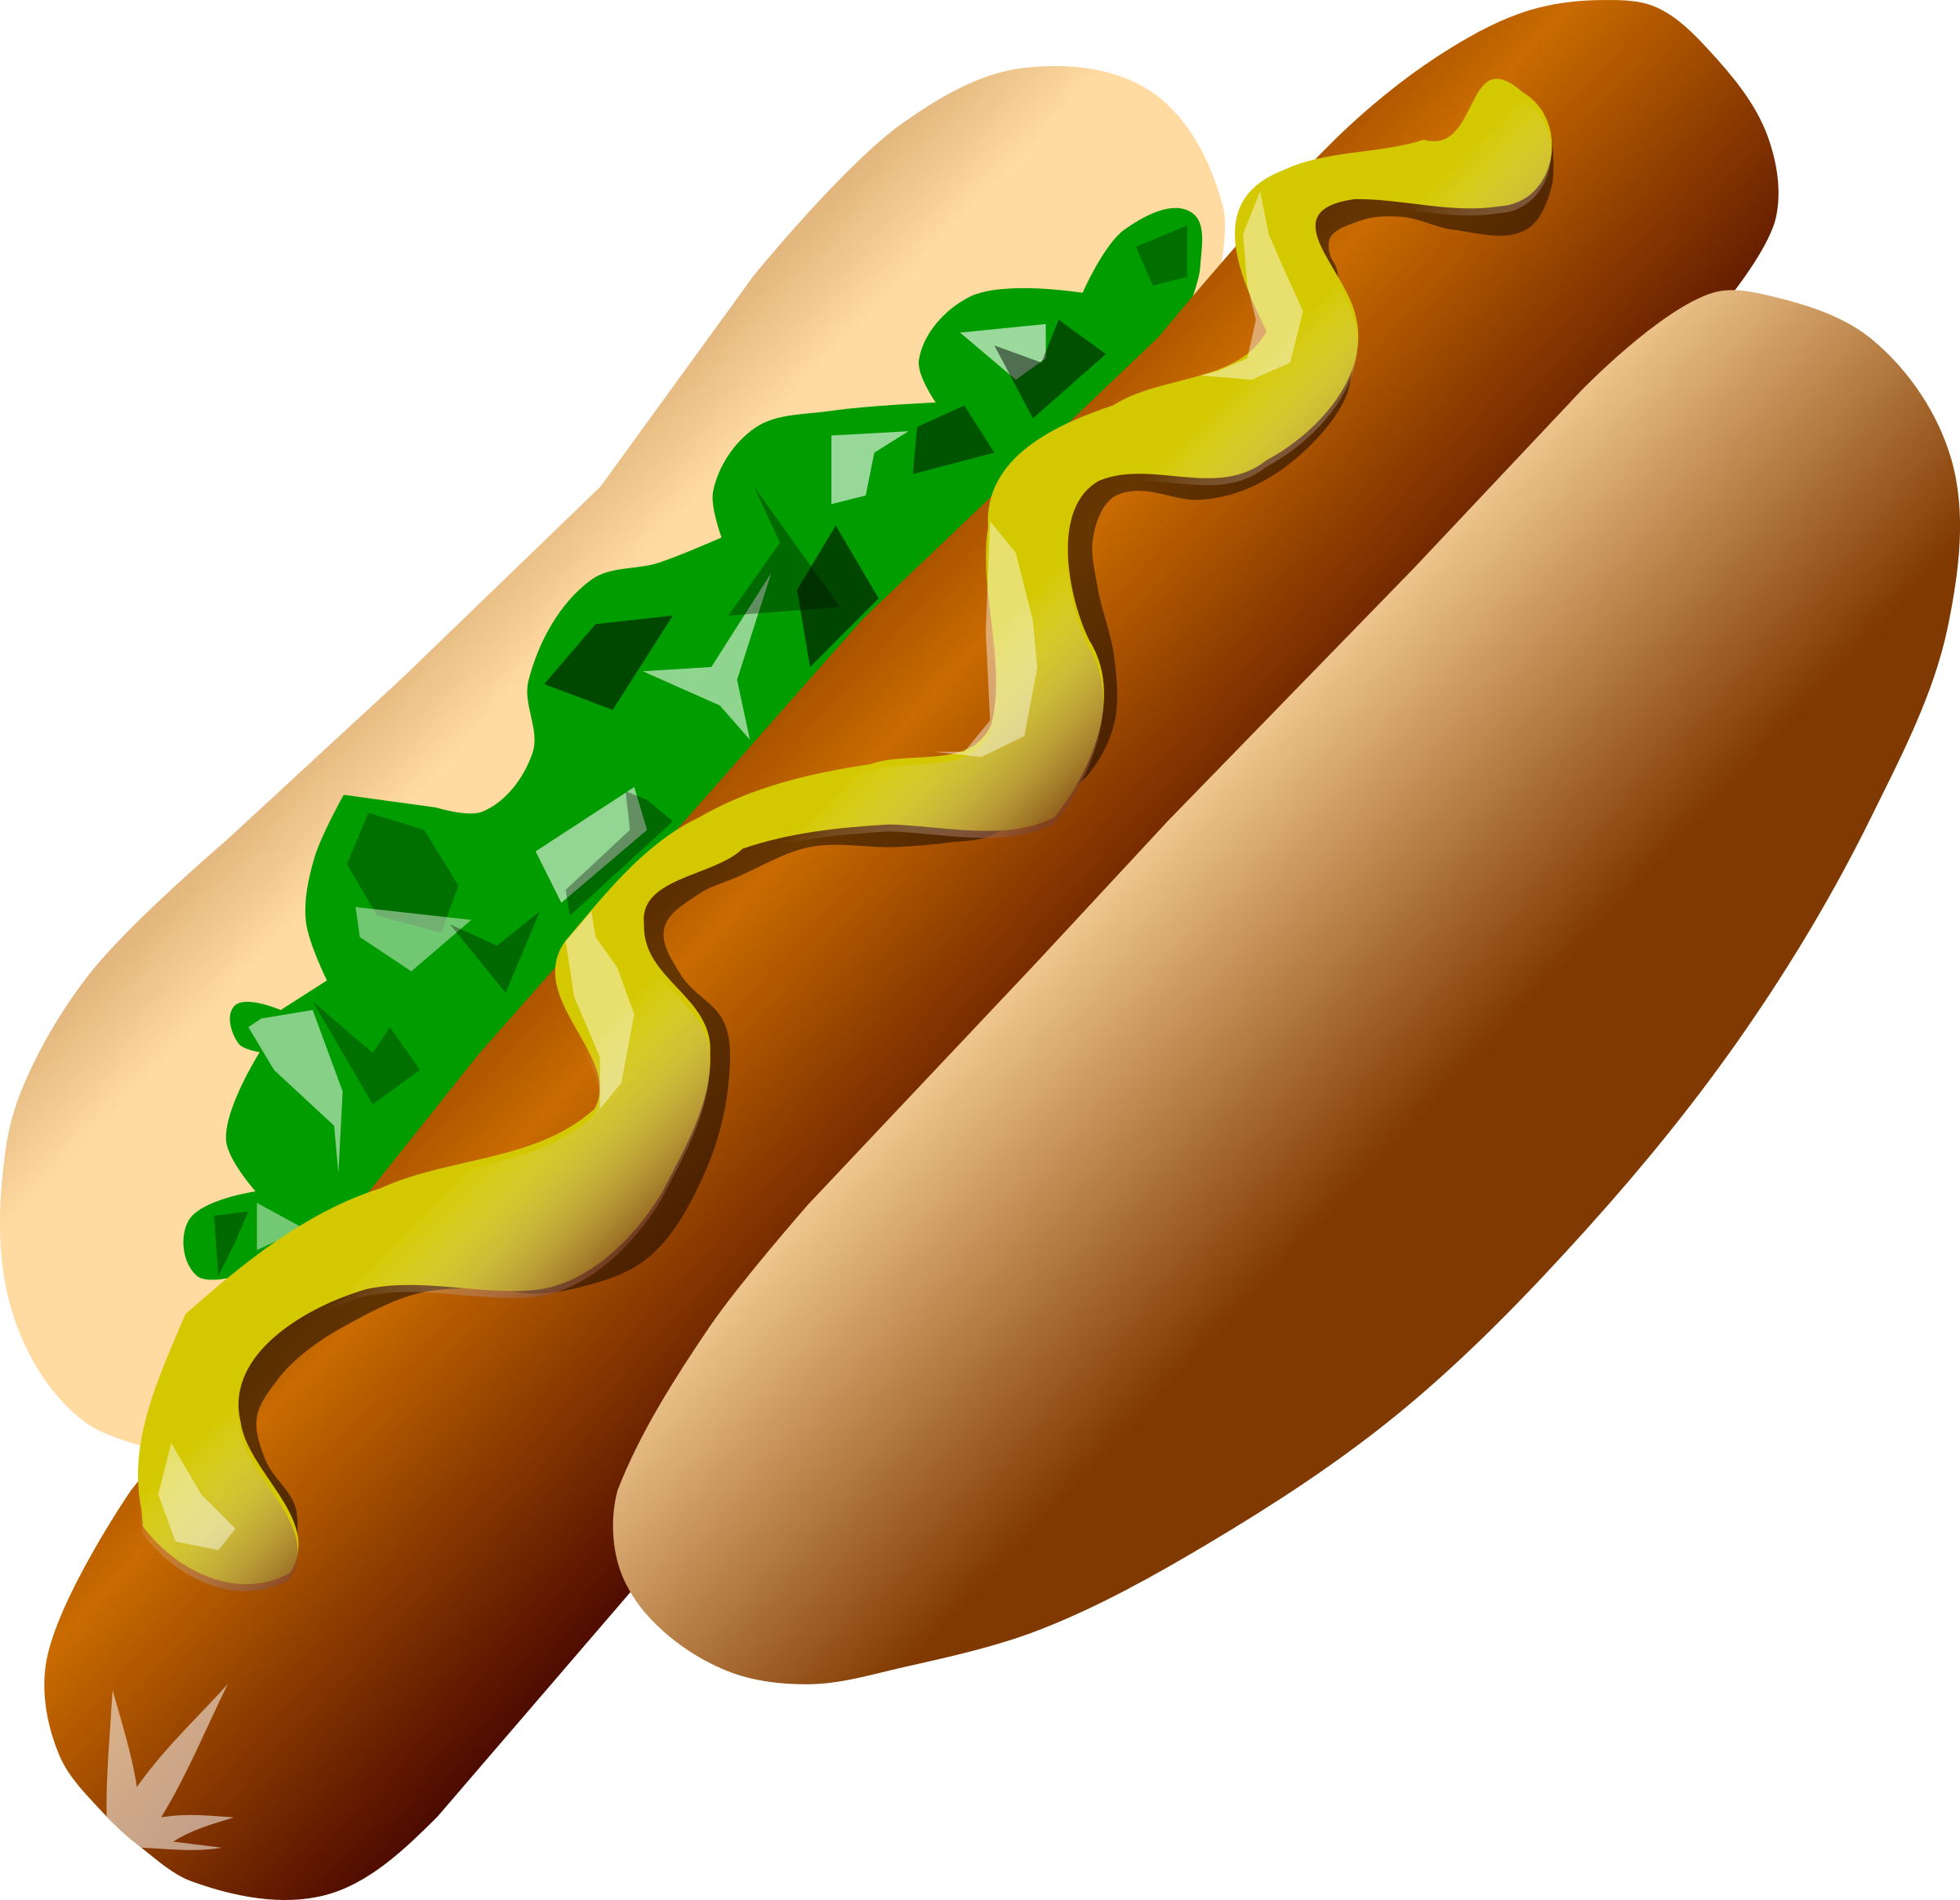 Transparent hot dog clipart graphic royalty free Clipart - Hot Dog graphic royalty free